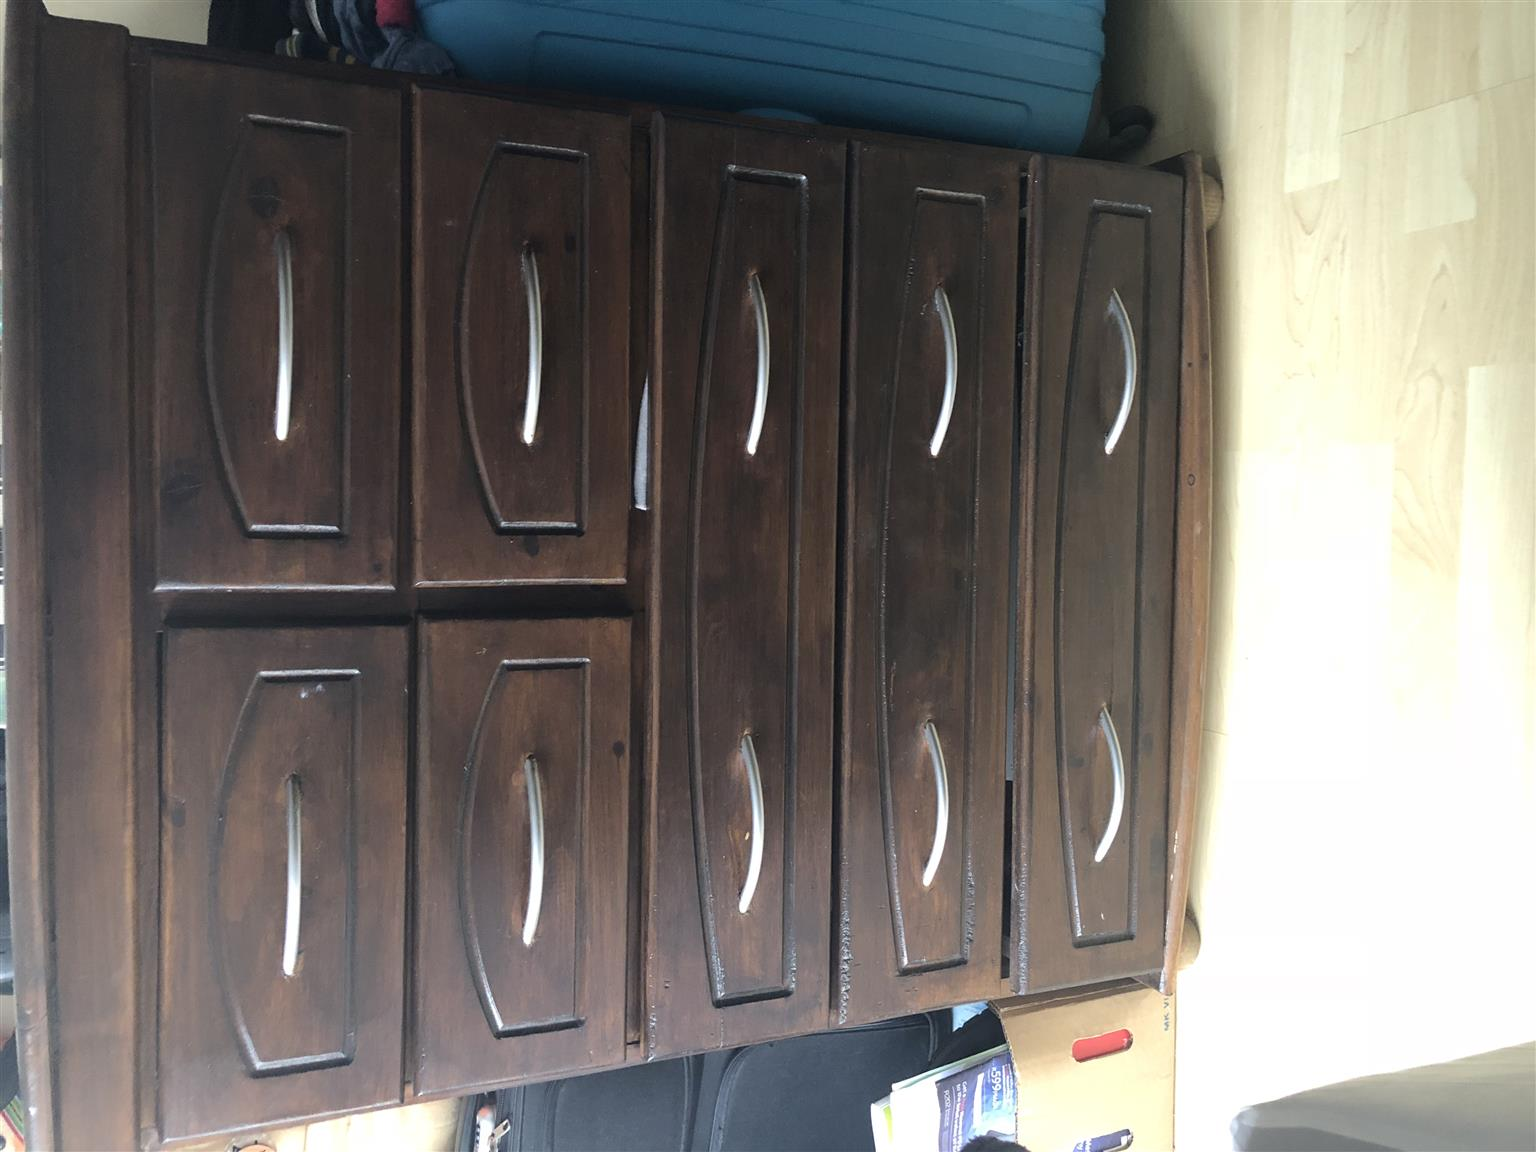 Set of drawers, bedroom cupboard mirror and washing line